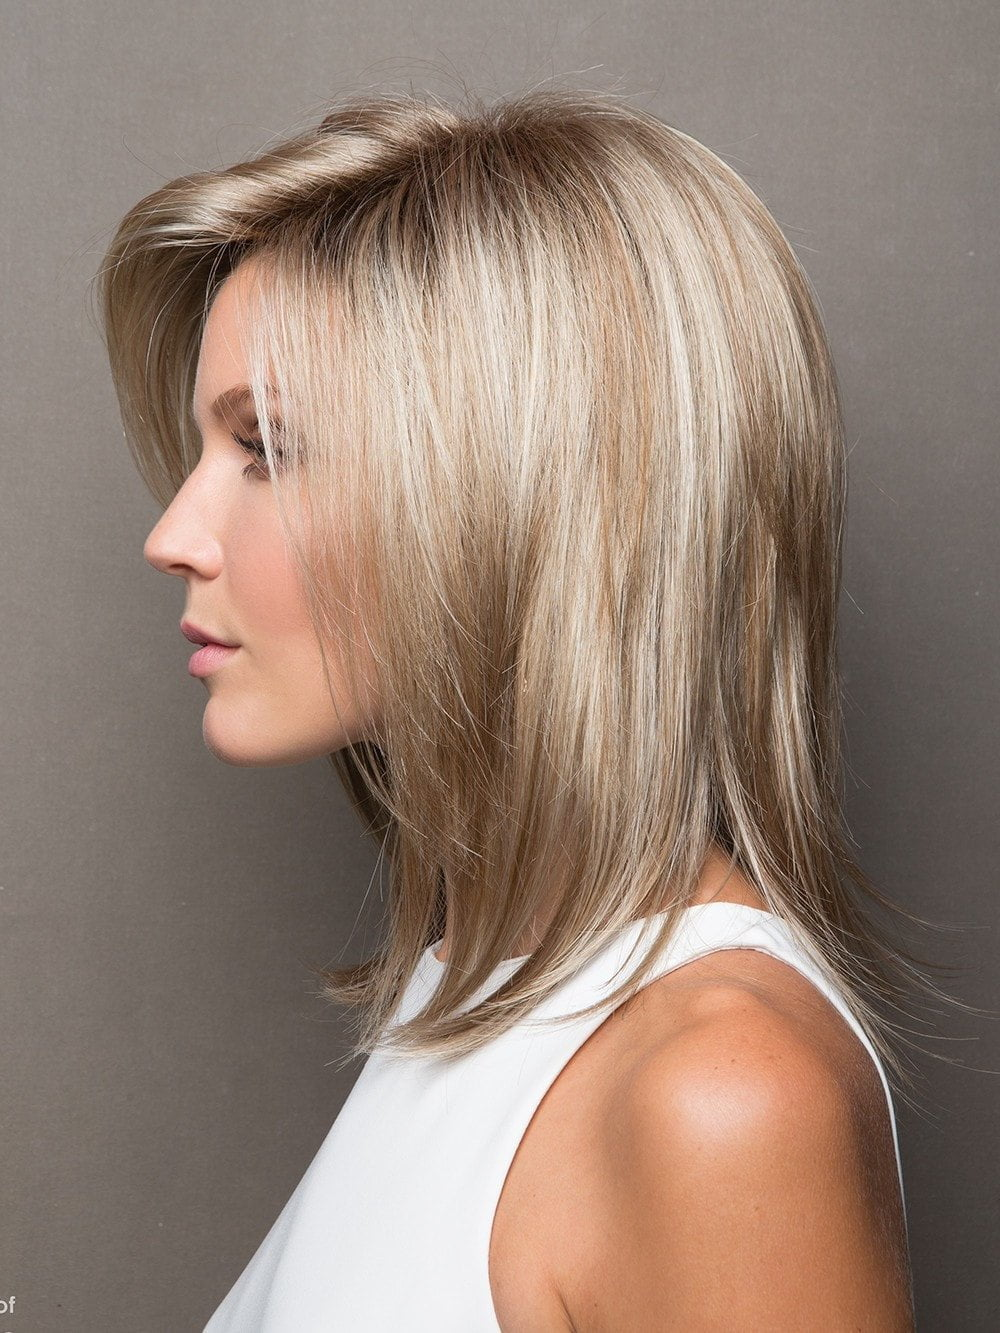 Jackson by Noriko is a voluminous, layered mid-length cut. It embodies feminine style with its subtle pointed ends and modern tease.